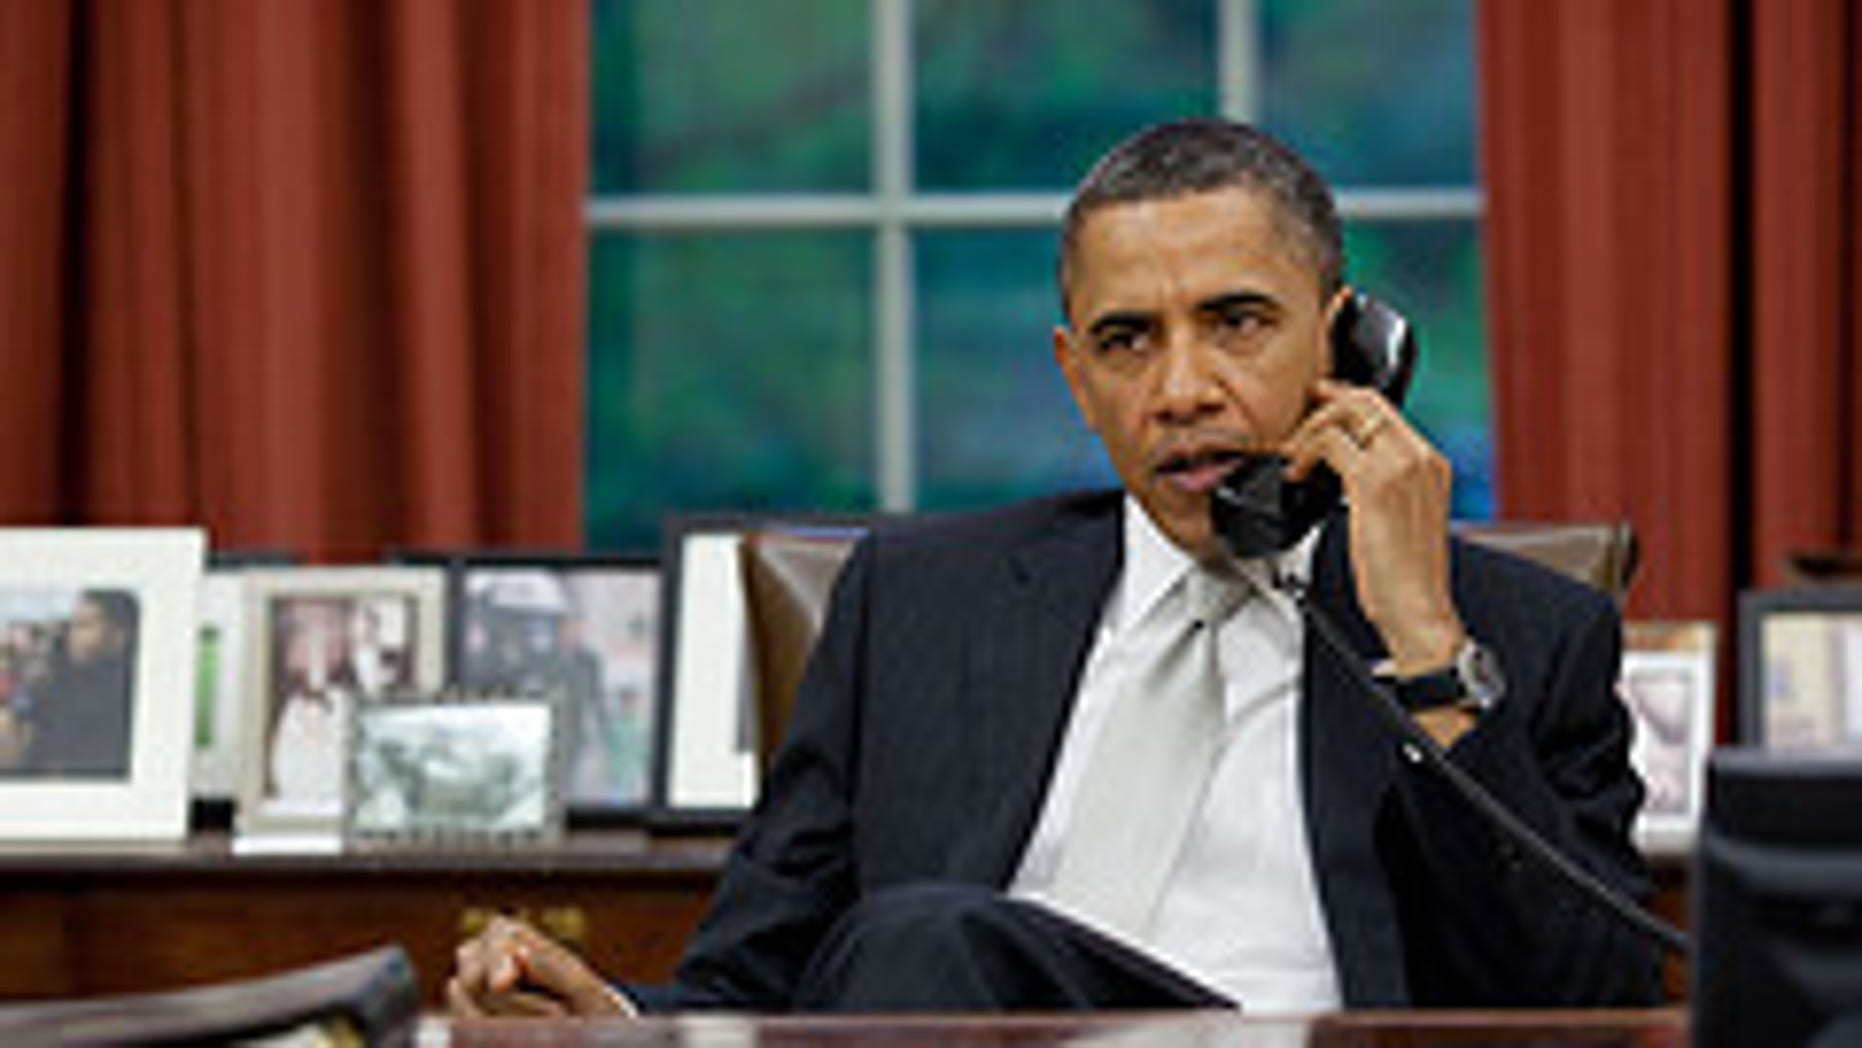 WH photo by Pete Souza/President Obama discusses federal disaster relief efforts